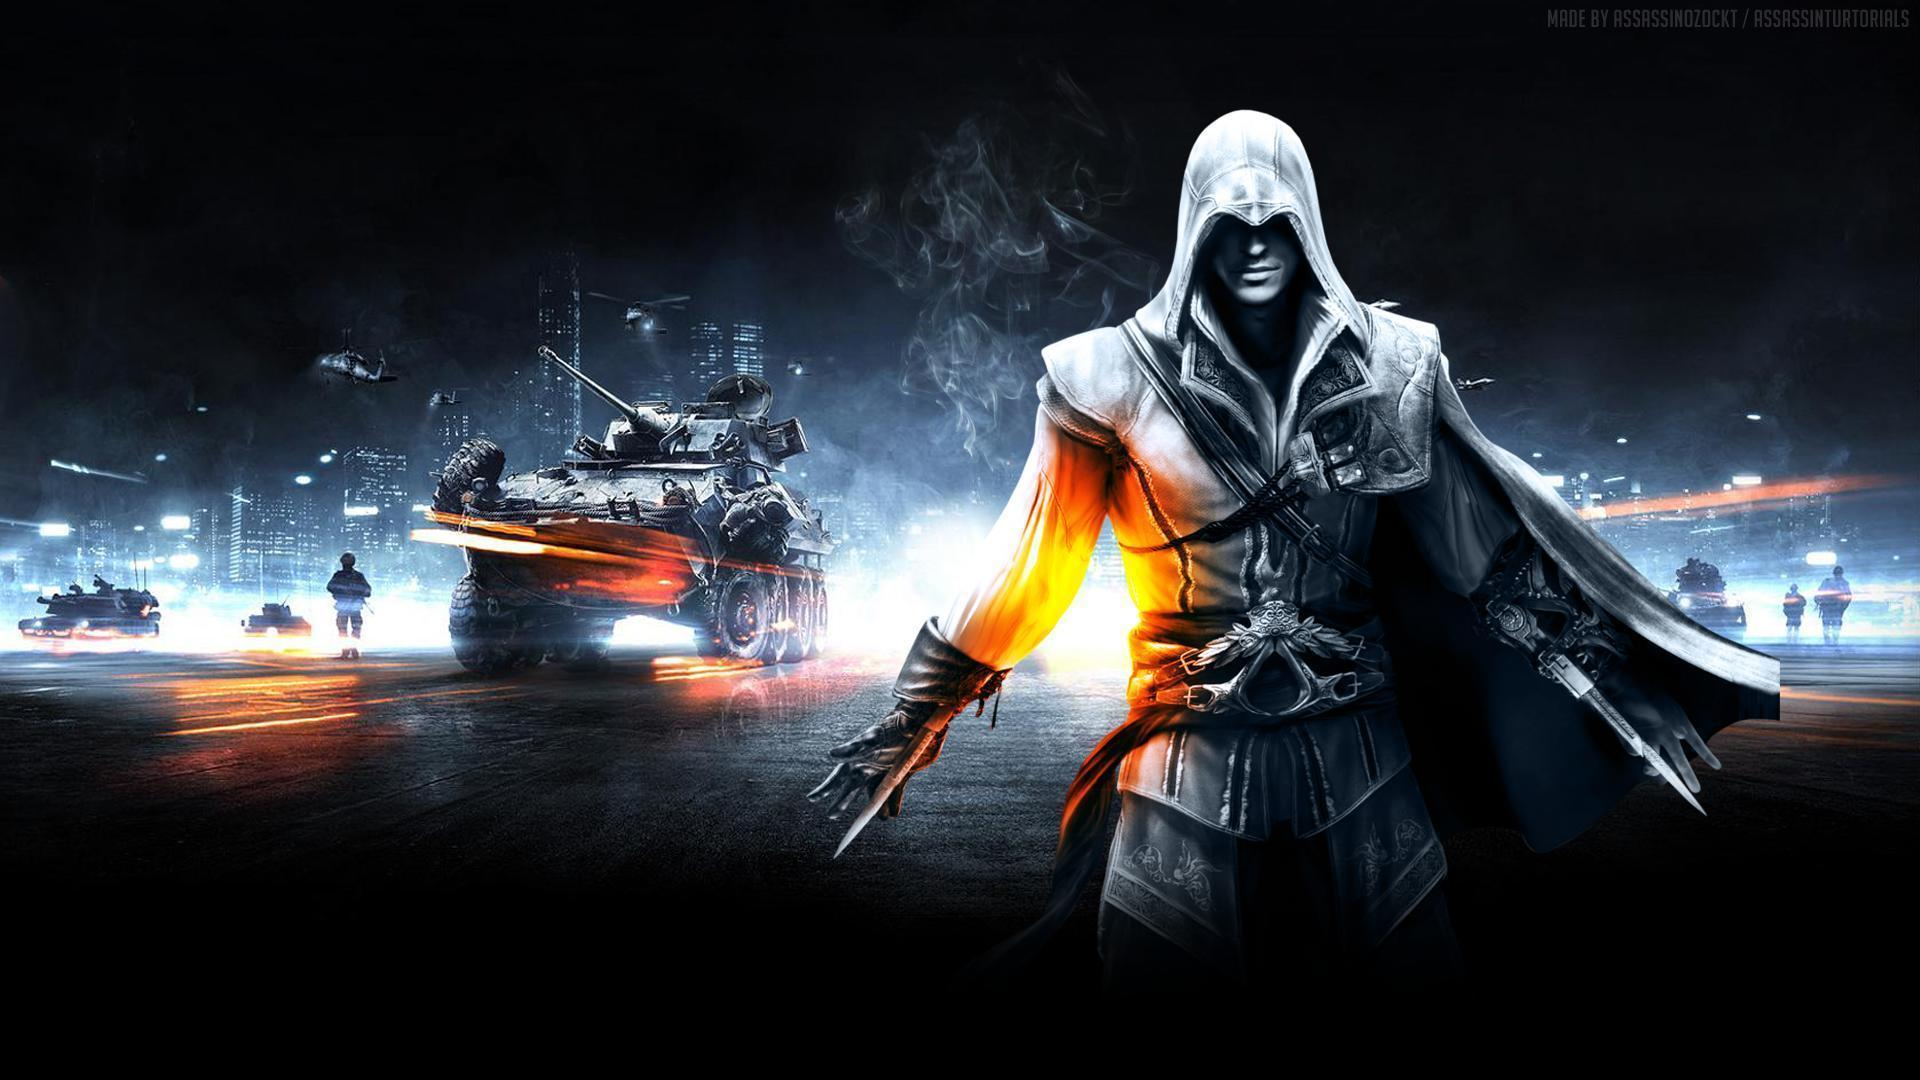 Cool Video Game Backgrounds 1920x1080